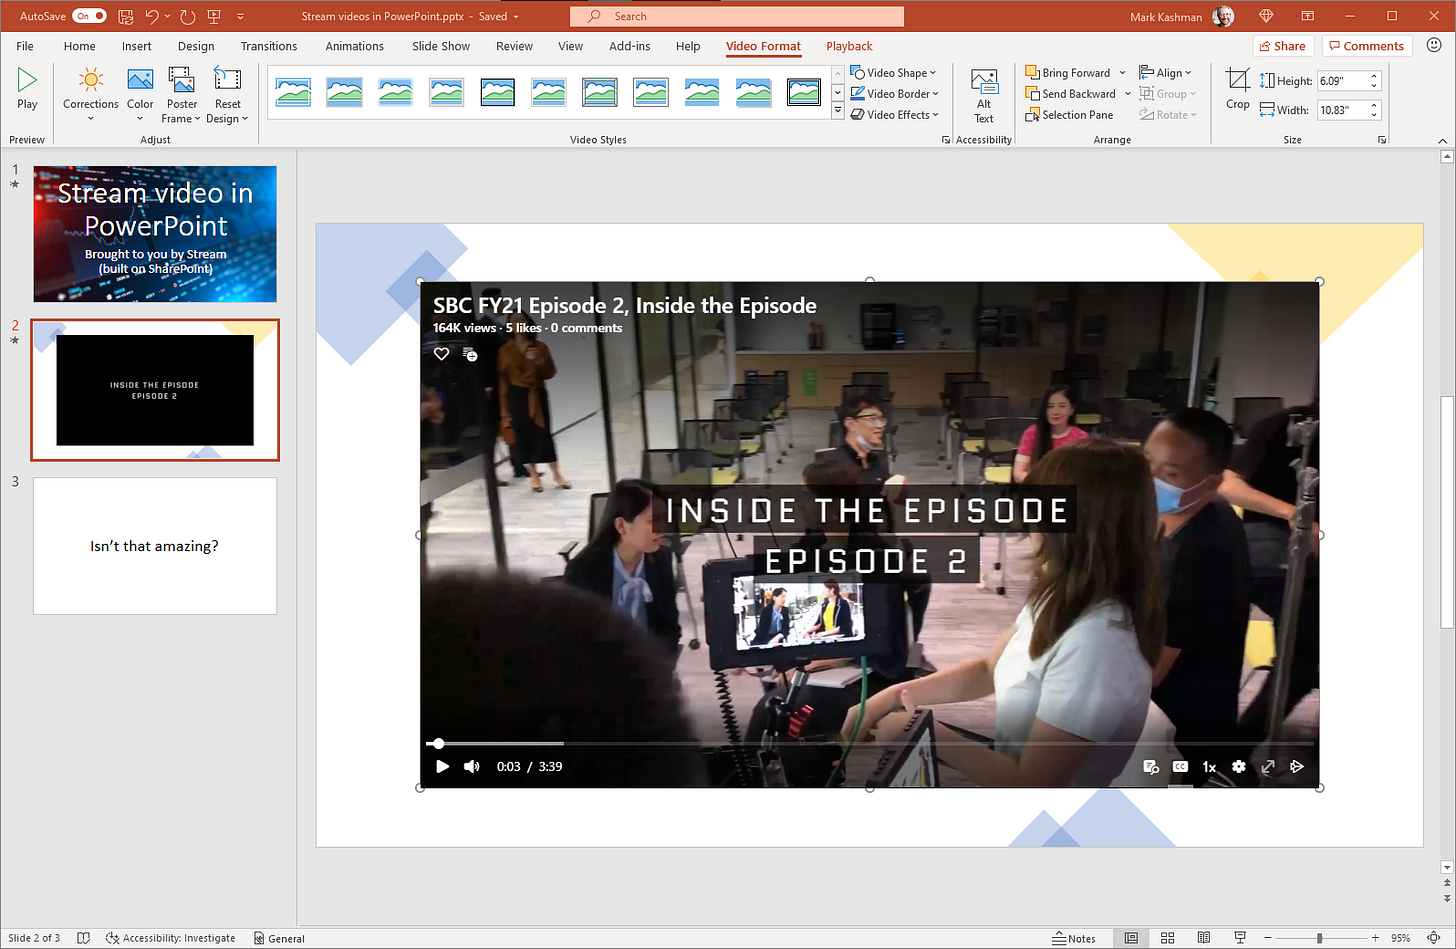 Stream video inserted onto a PowerPoint slide to play inline during the Slide Show.